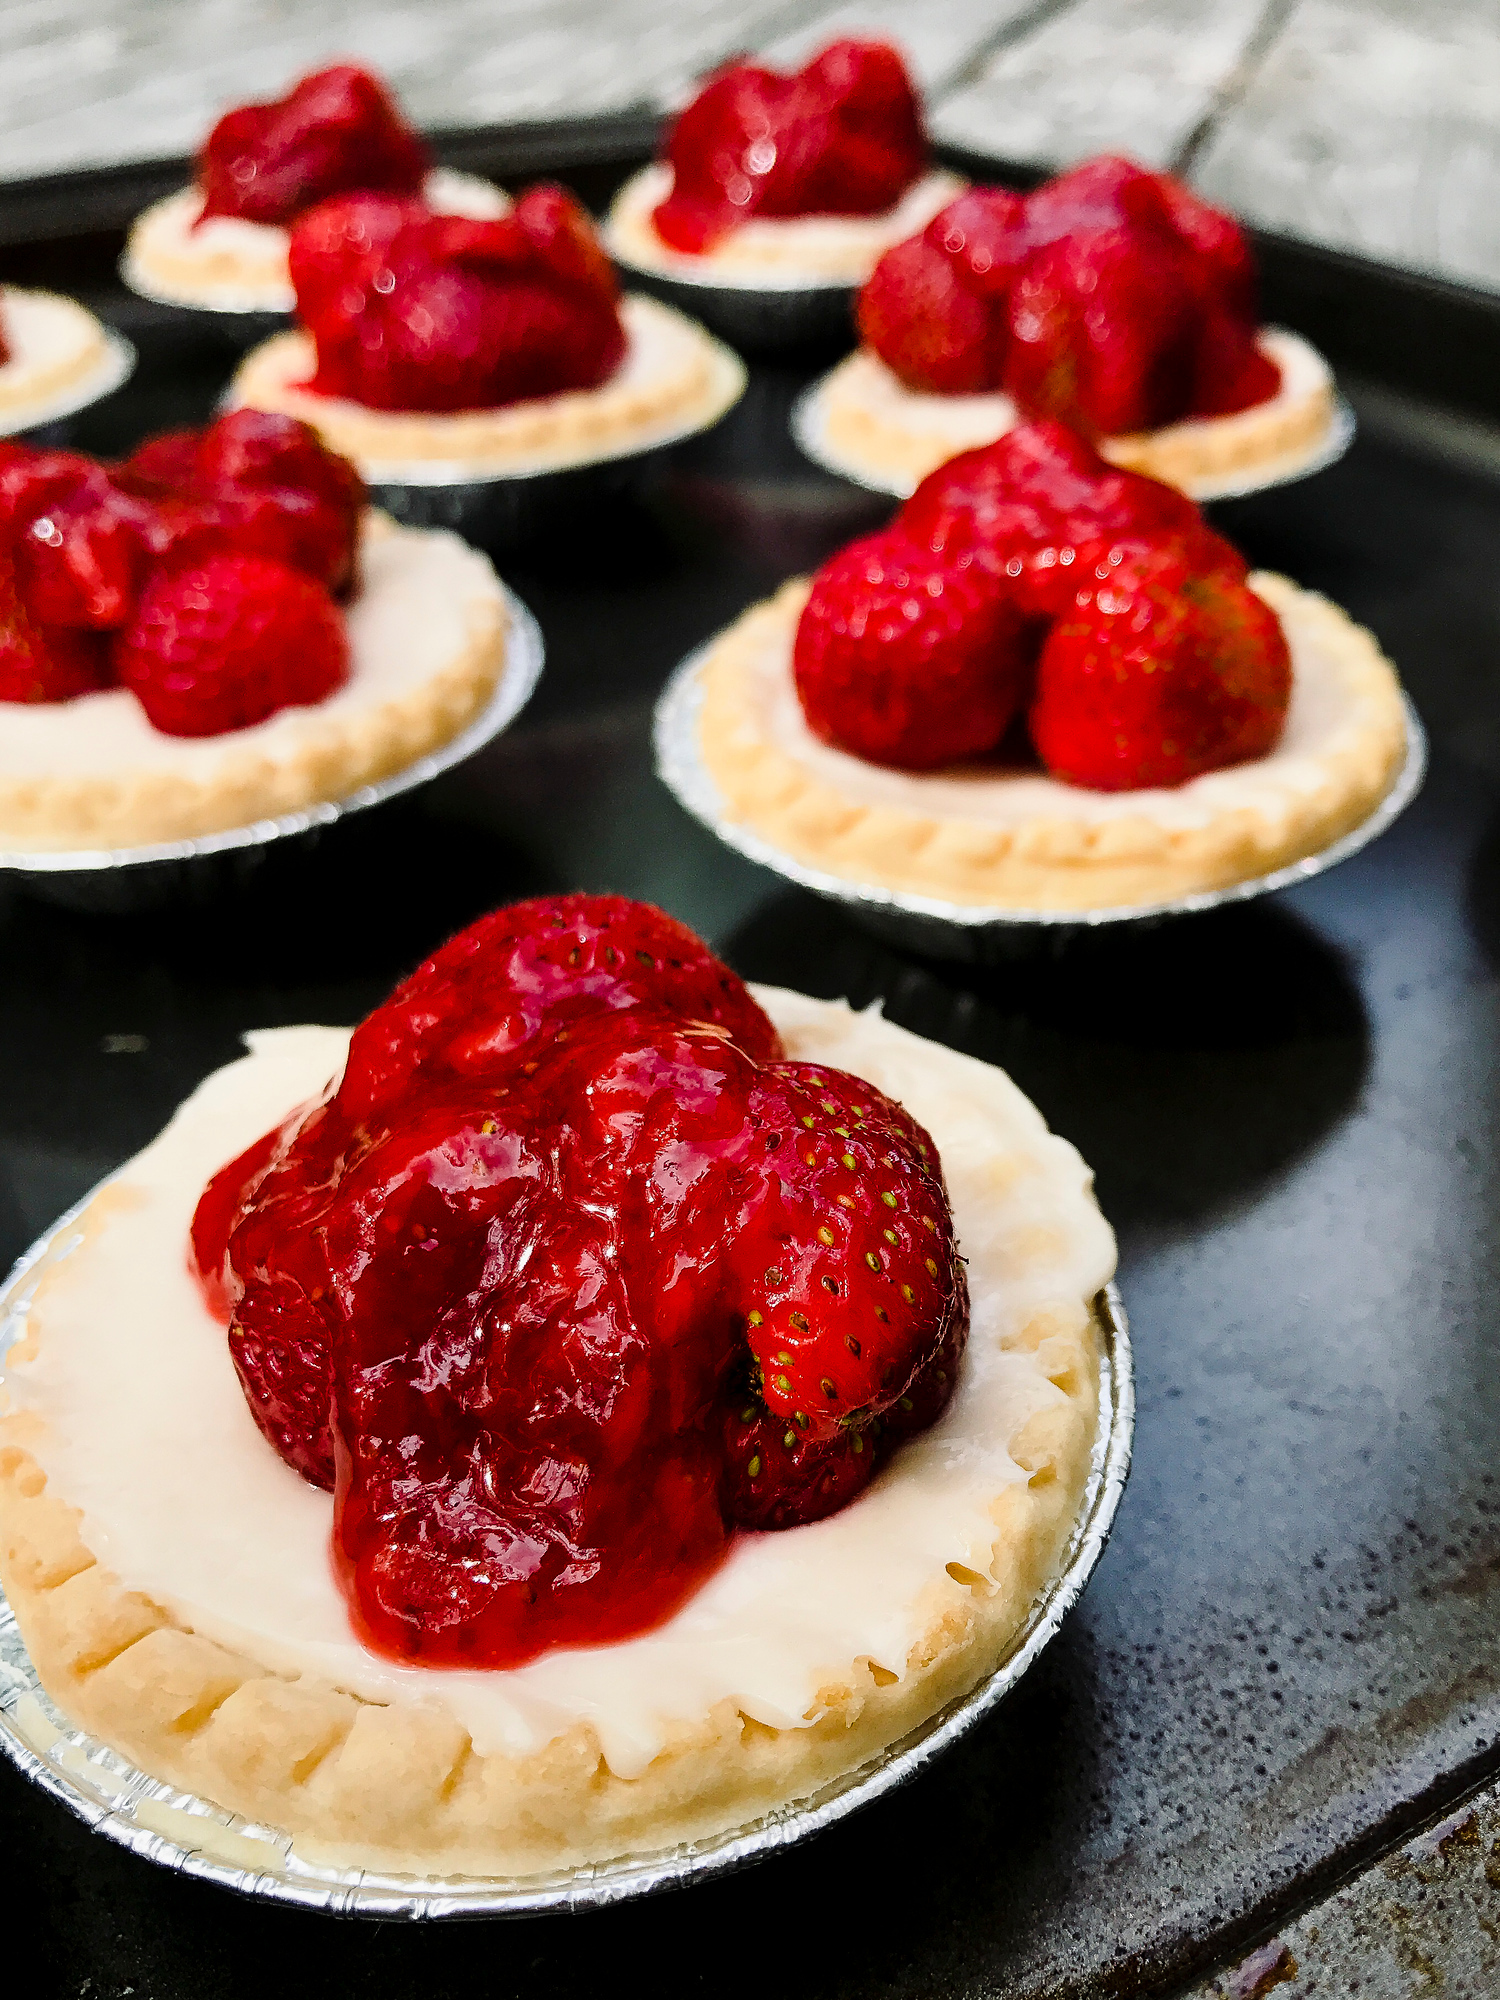 This strawberry tart recipe is so easy, it's perfect for people who hate to bake.